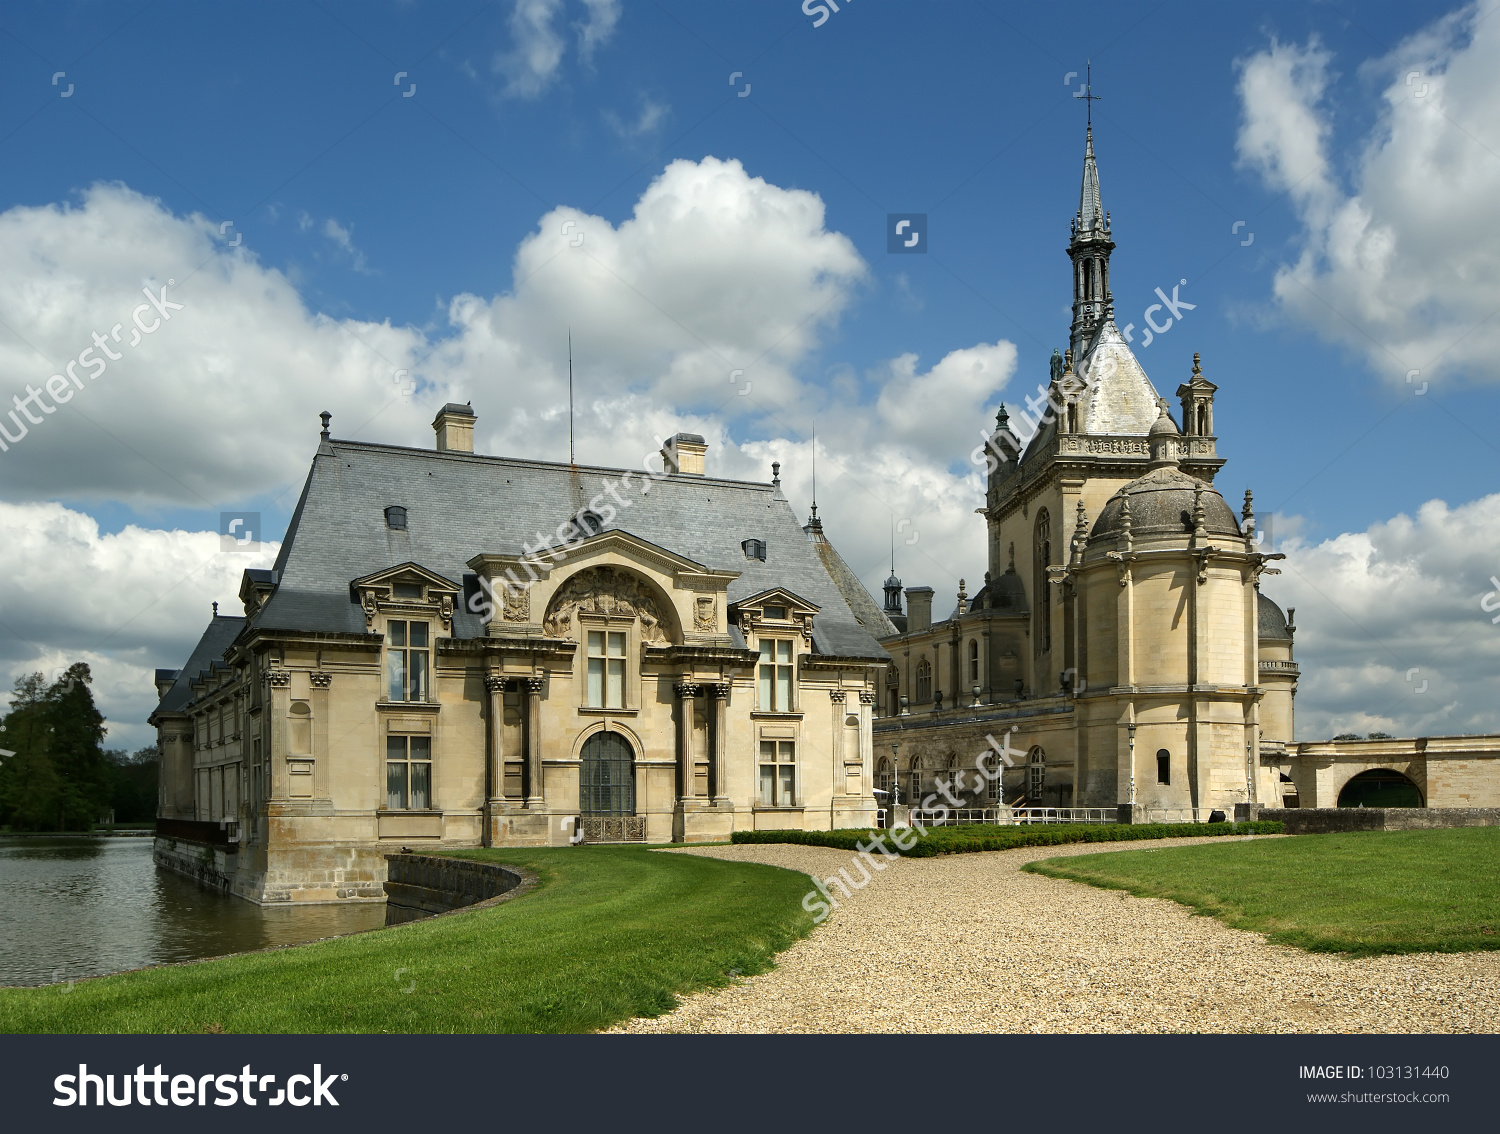 Chateau De Chantilly ( Chantilly Castle ), Oise, Picardie, France.